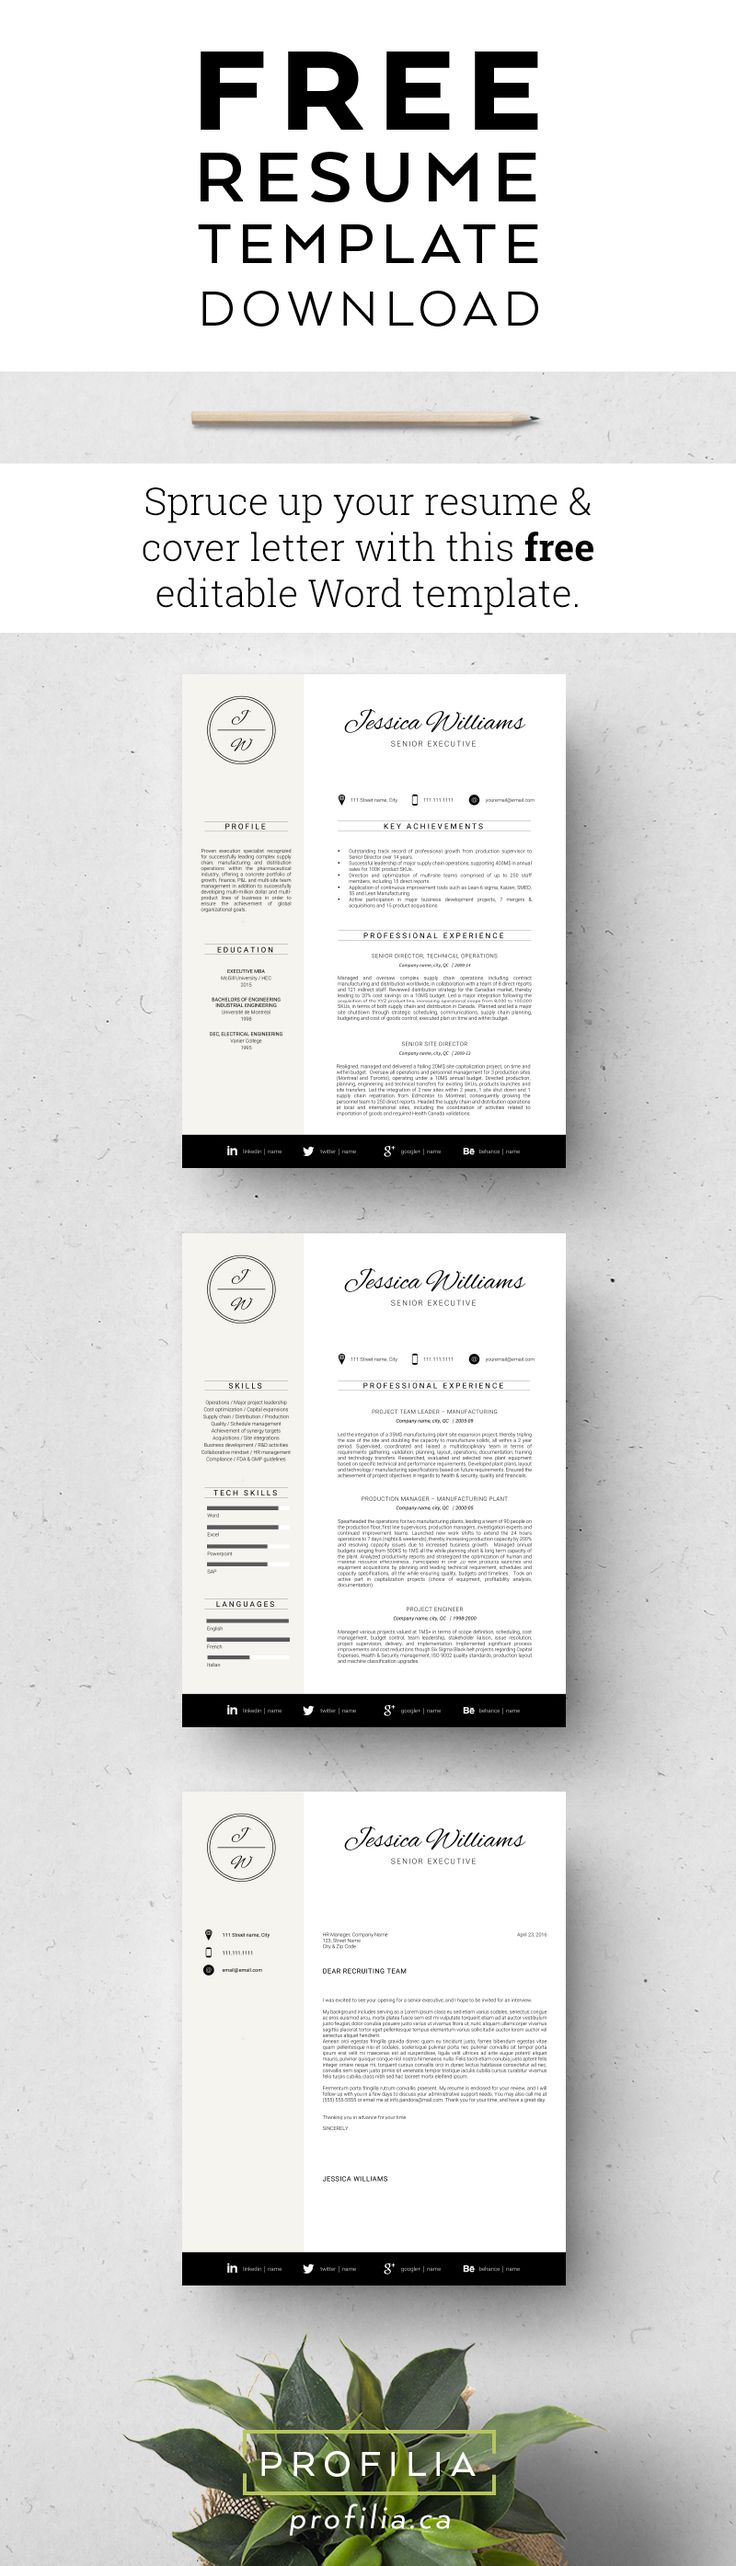 free resume template refresh your job search with this free resume cover - Example Resume Cover Letter